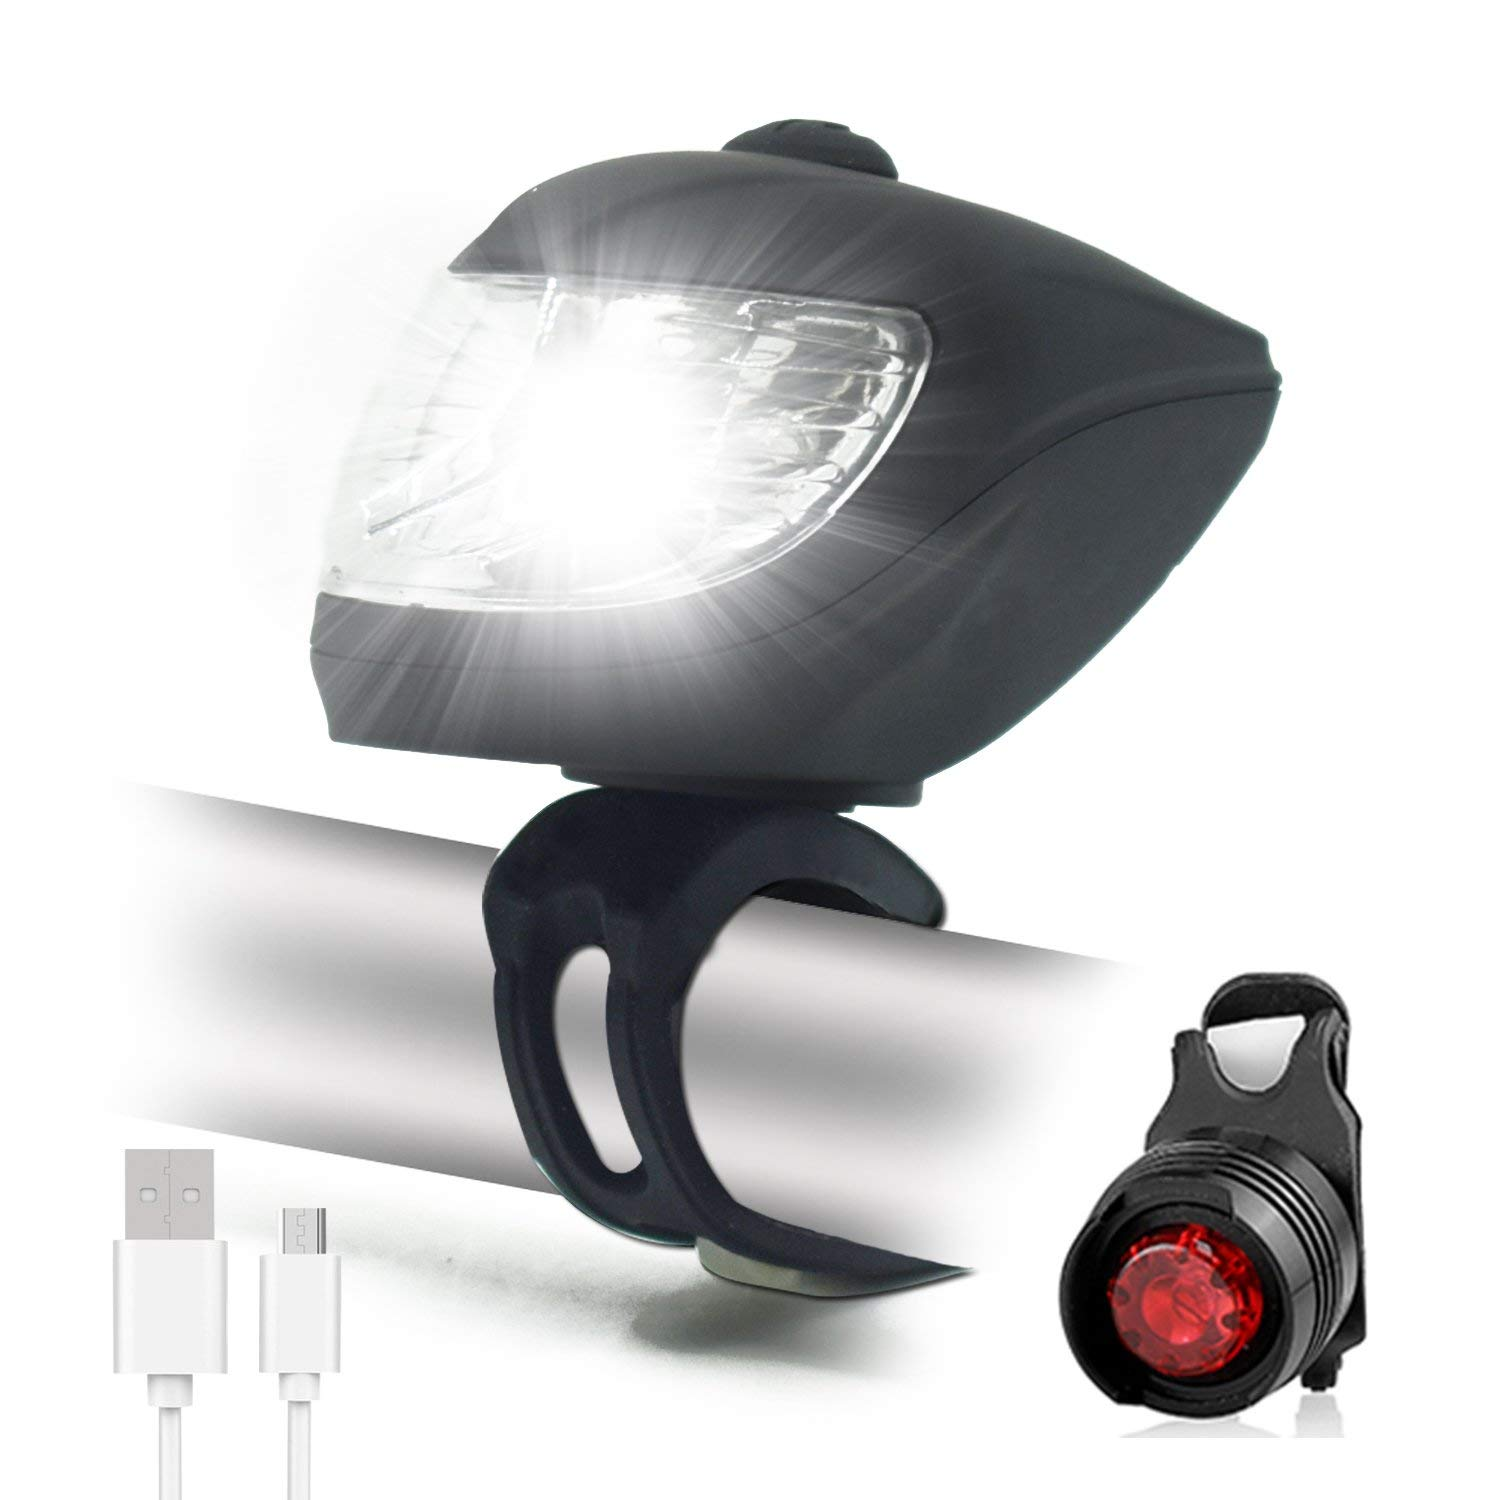 cdacd3bee8b Get Quotations · WasaFire Bike Light Set Super Bright 500 Lumen Front Light  and Free Rear LED Bicycle Light